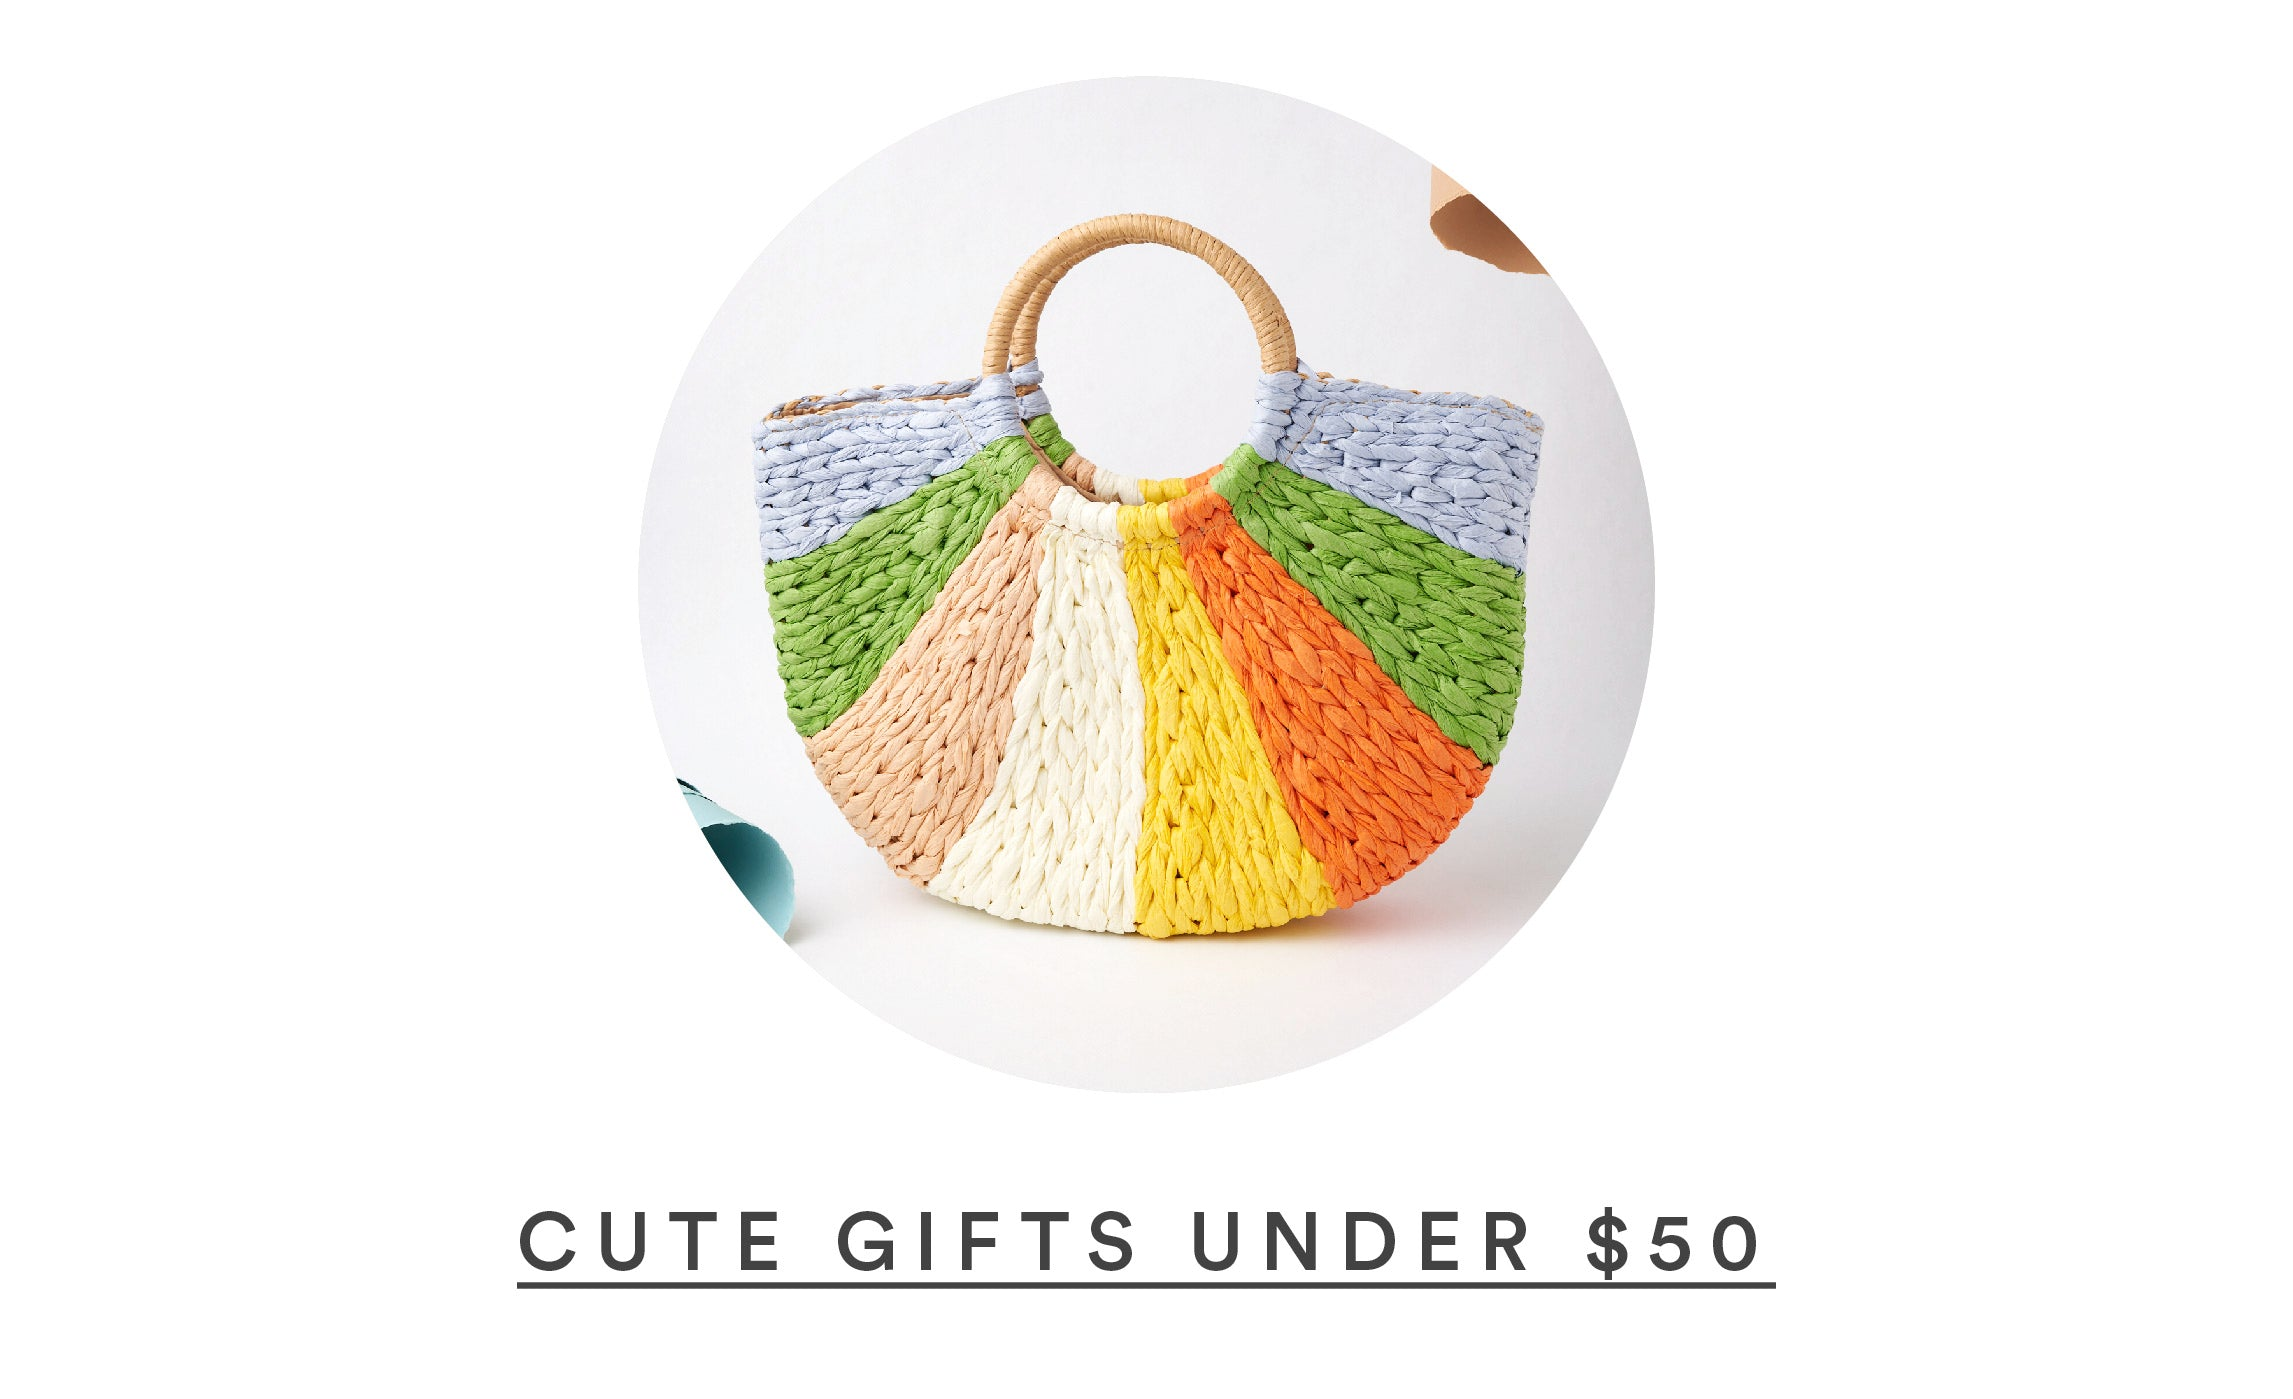 Cute gifts under 50 dollars